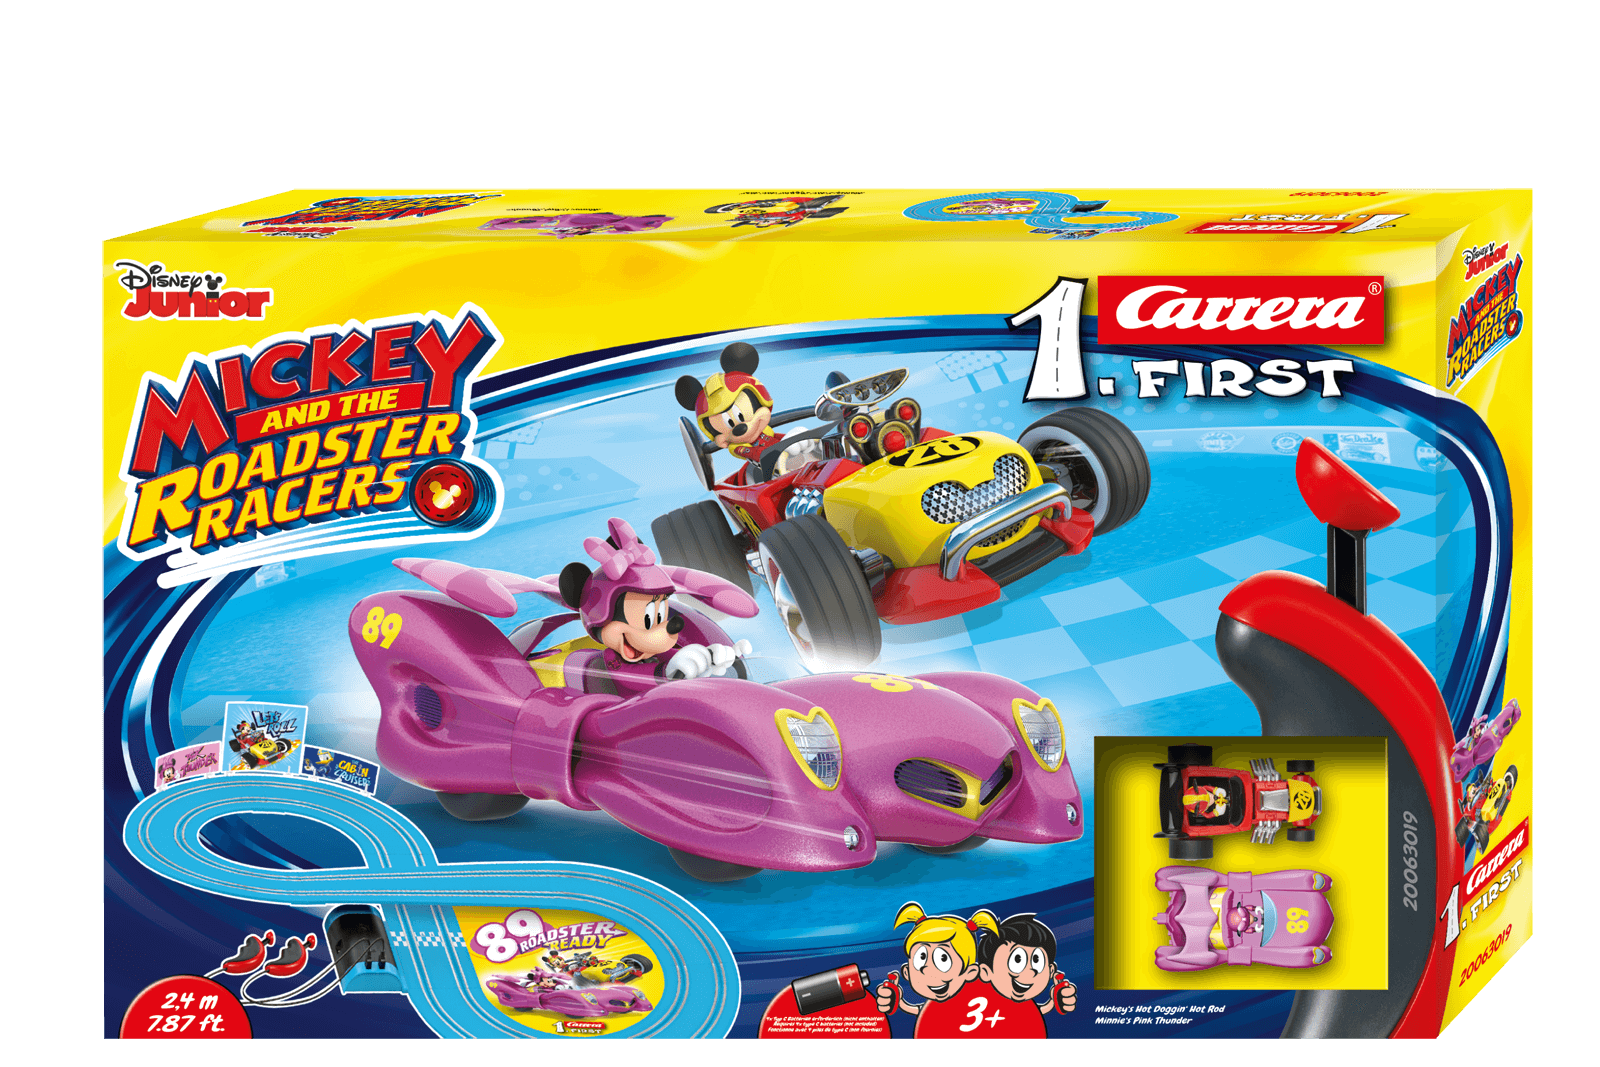 CARRERA FIRST MICKEY AND THE ROADSTER RACERS - MINNIE cod. 20063019